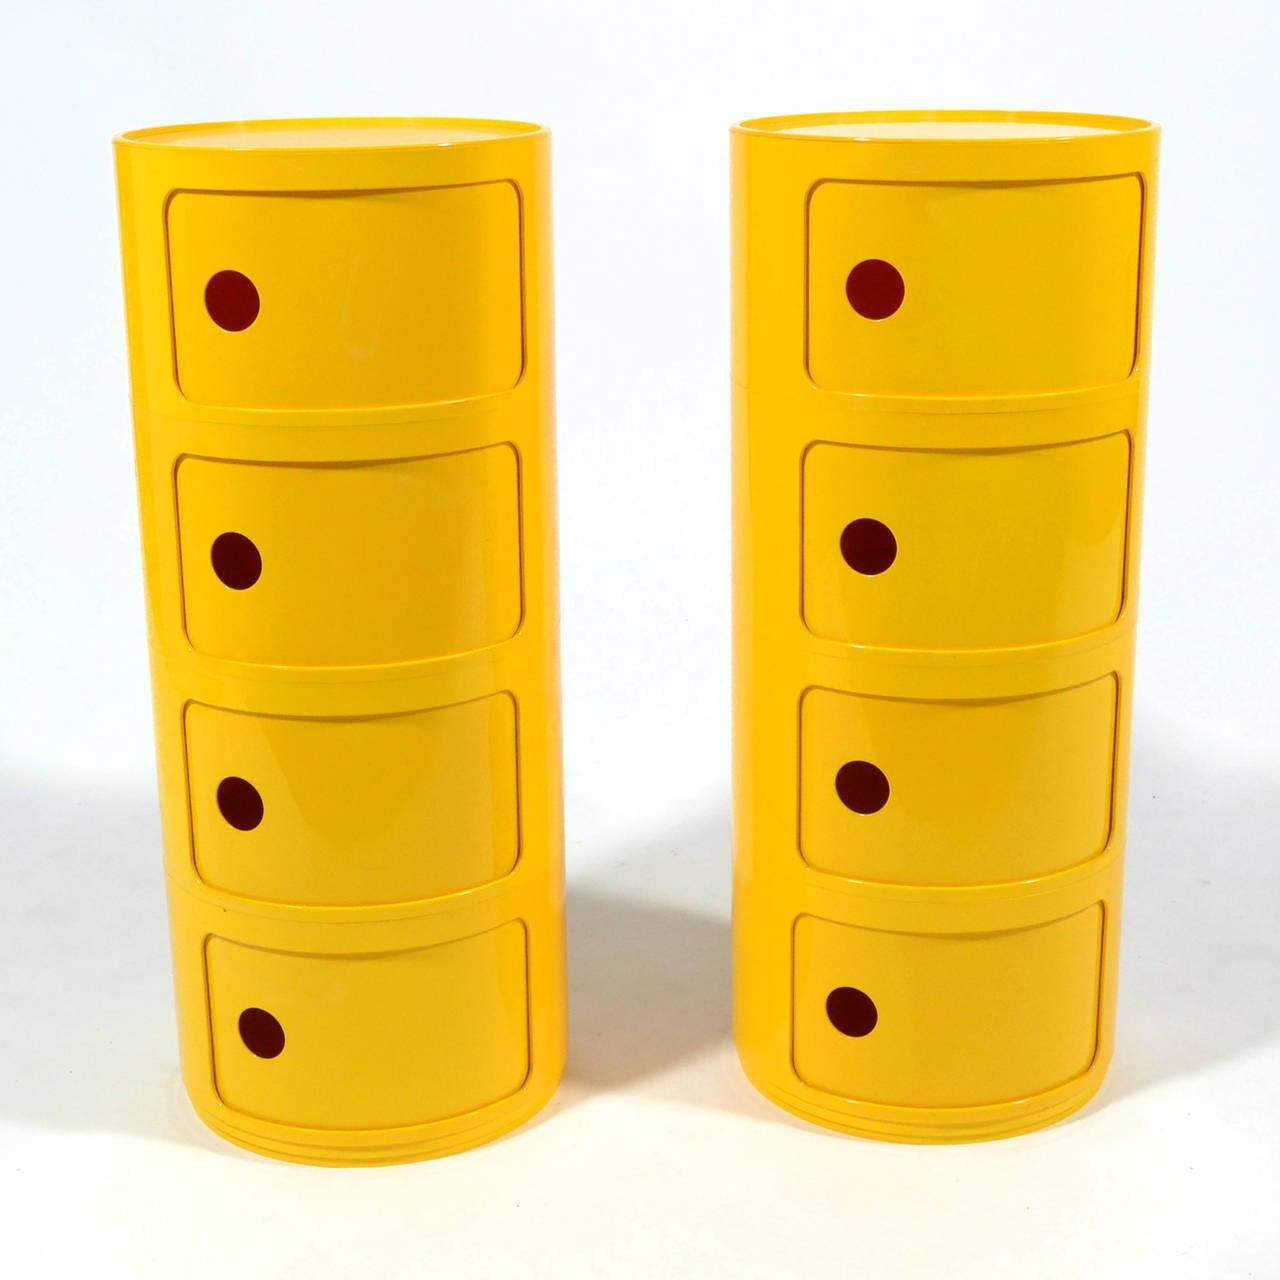 Mid-Century Modern Anna Castelli Ferrieri Set of Componibili Storage Units by Kartell For Sale